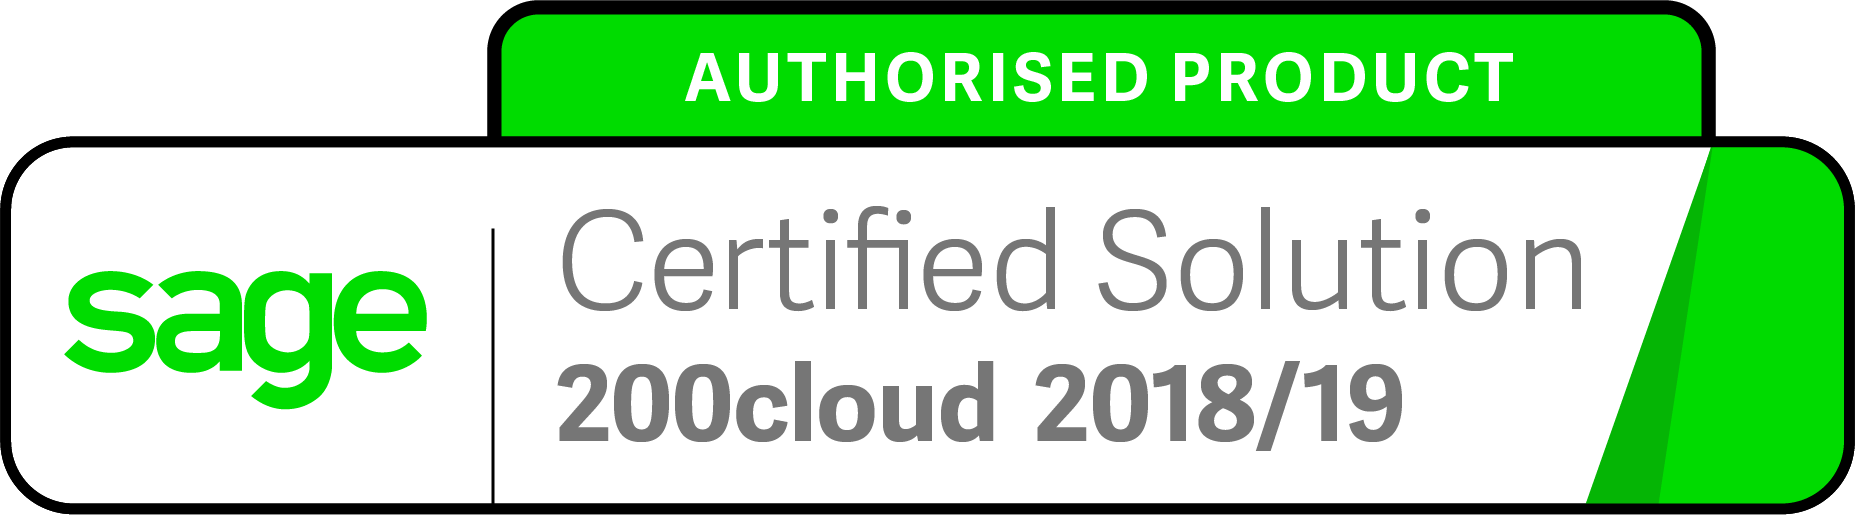 Sage Authorised Product Logo 200cloud